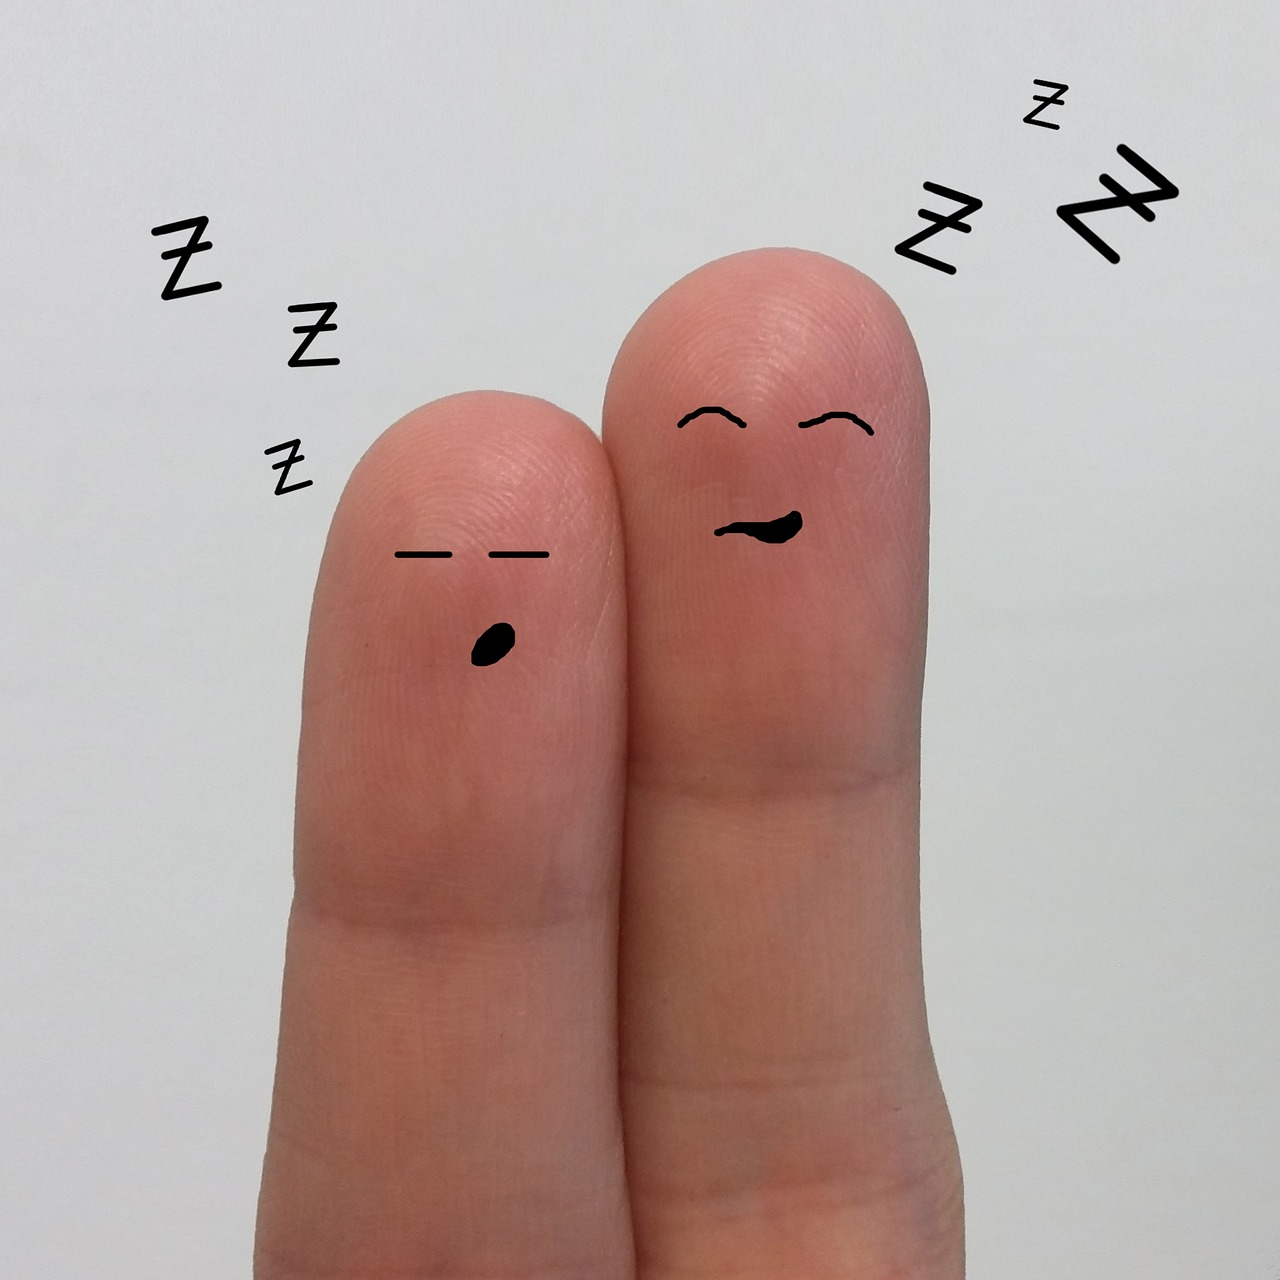 sleep smilies fingers free photo